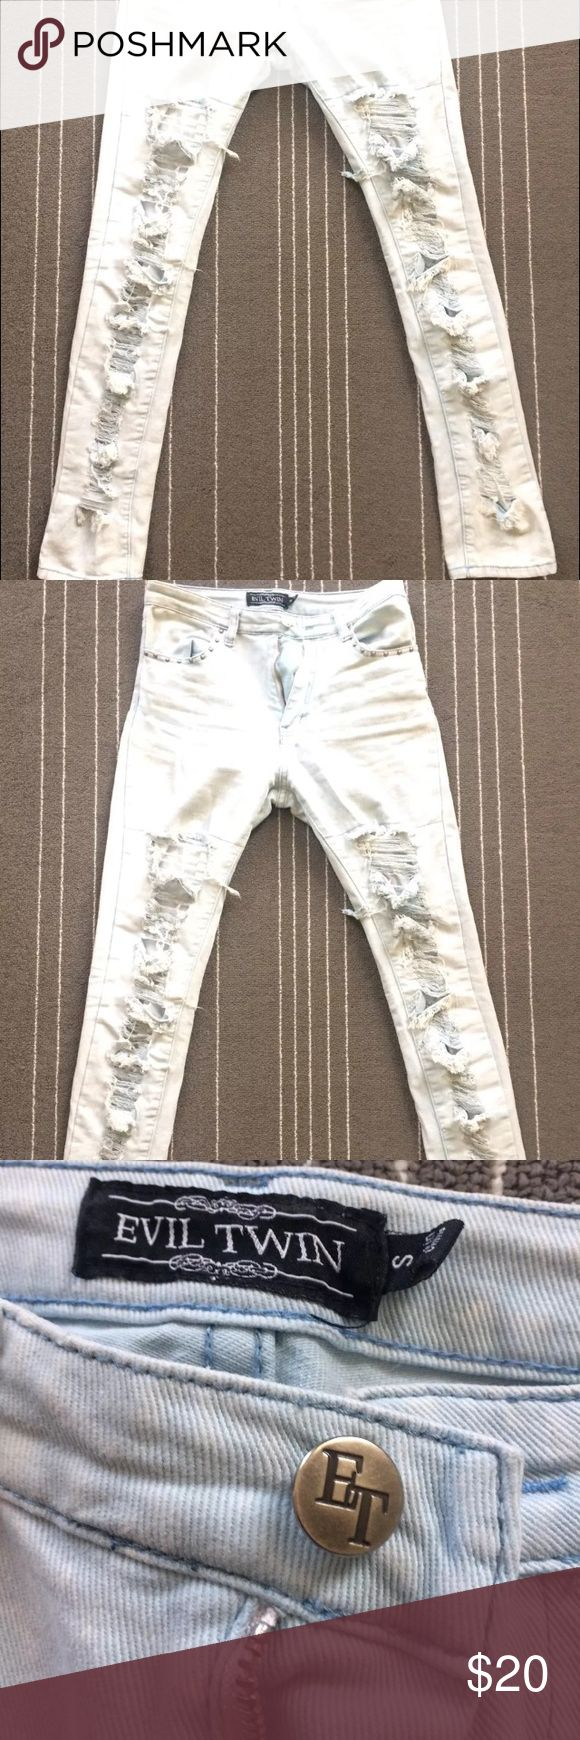 """Evil Twin acid wash thrasher ripped skinny jeans Evil Twin brand skinny acid wash torn thrasher jeans. Leg fronts are all torn up, holes have lining so skin is not exposed. Stretchy slim skinny light blue with white splotches high waisted jeans. Size small.  Measures flat approximately 14"""" across waist, 28"""" inseam and 39"""" total length. Evil Twin Jeans Skinny"""